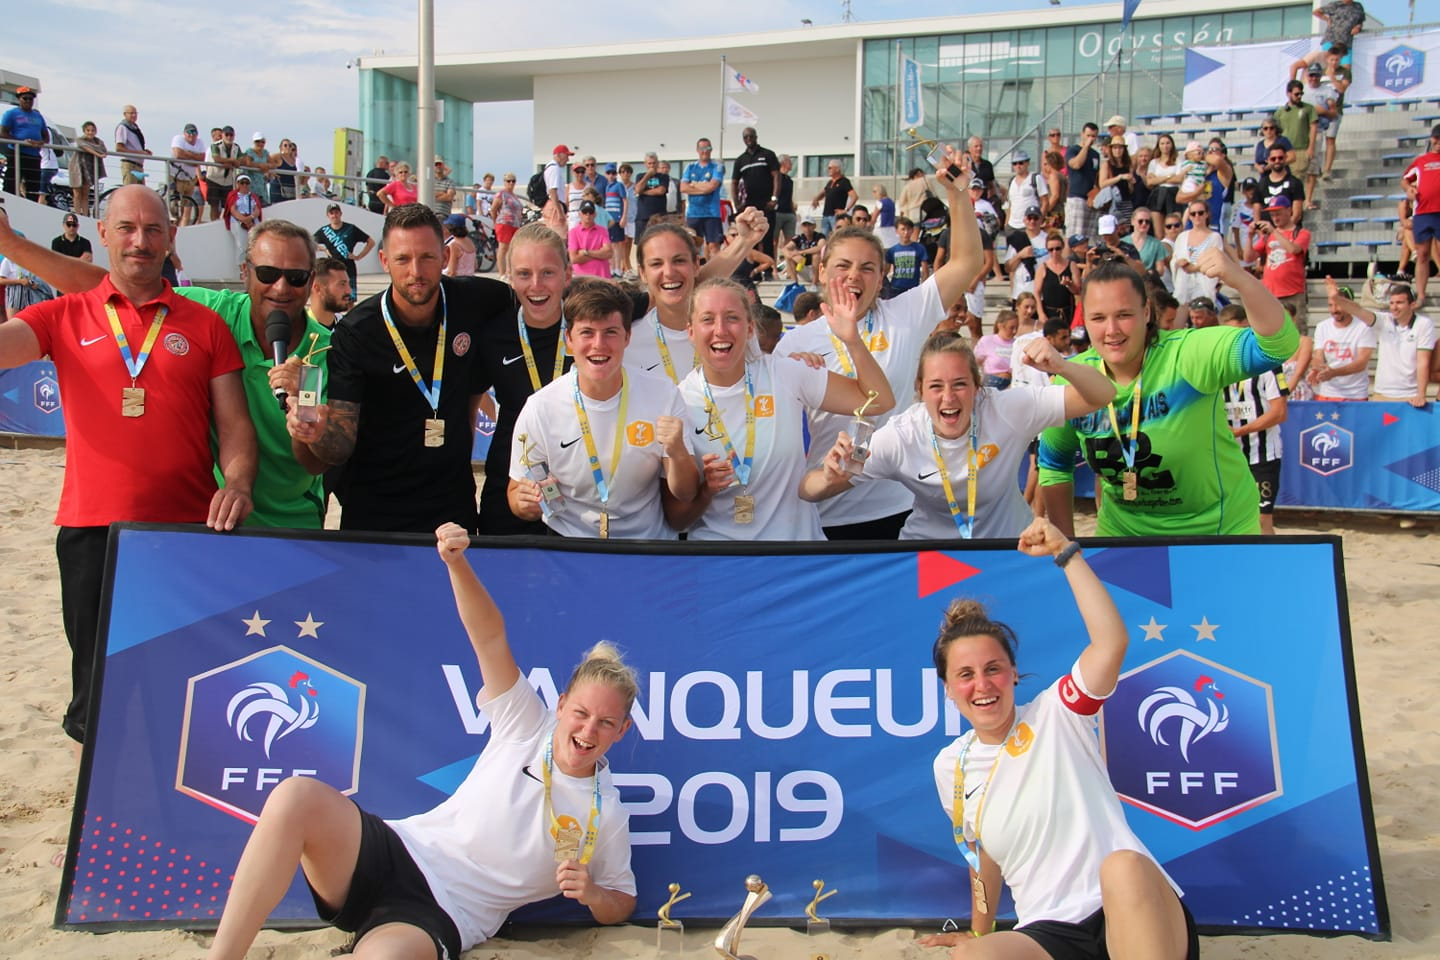 France : Le Grand Calais sacré champion de France de beach soccer